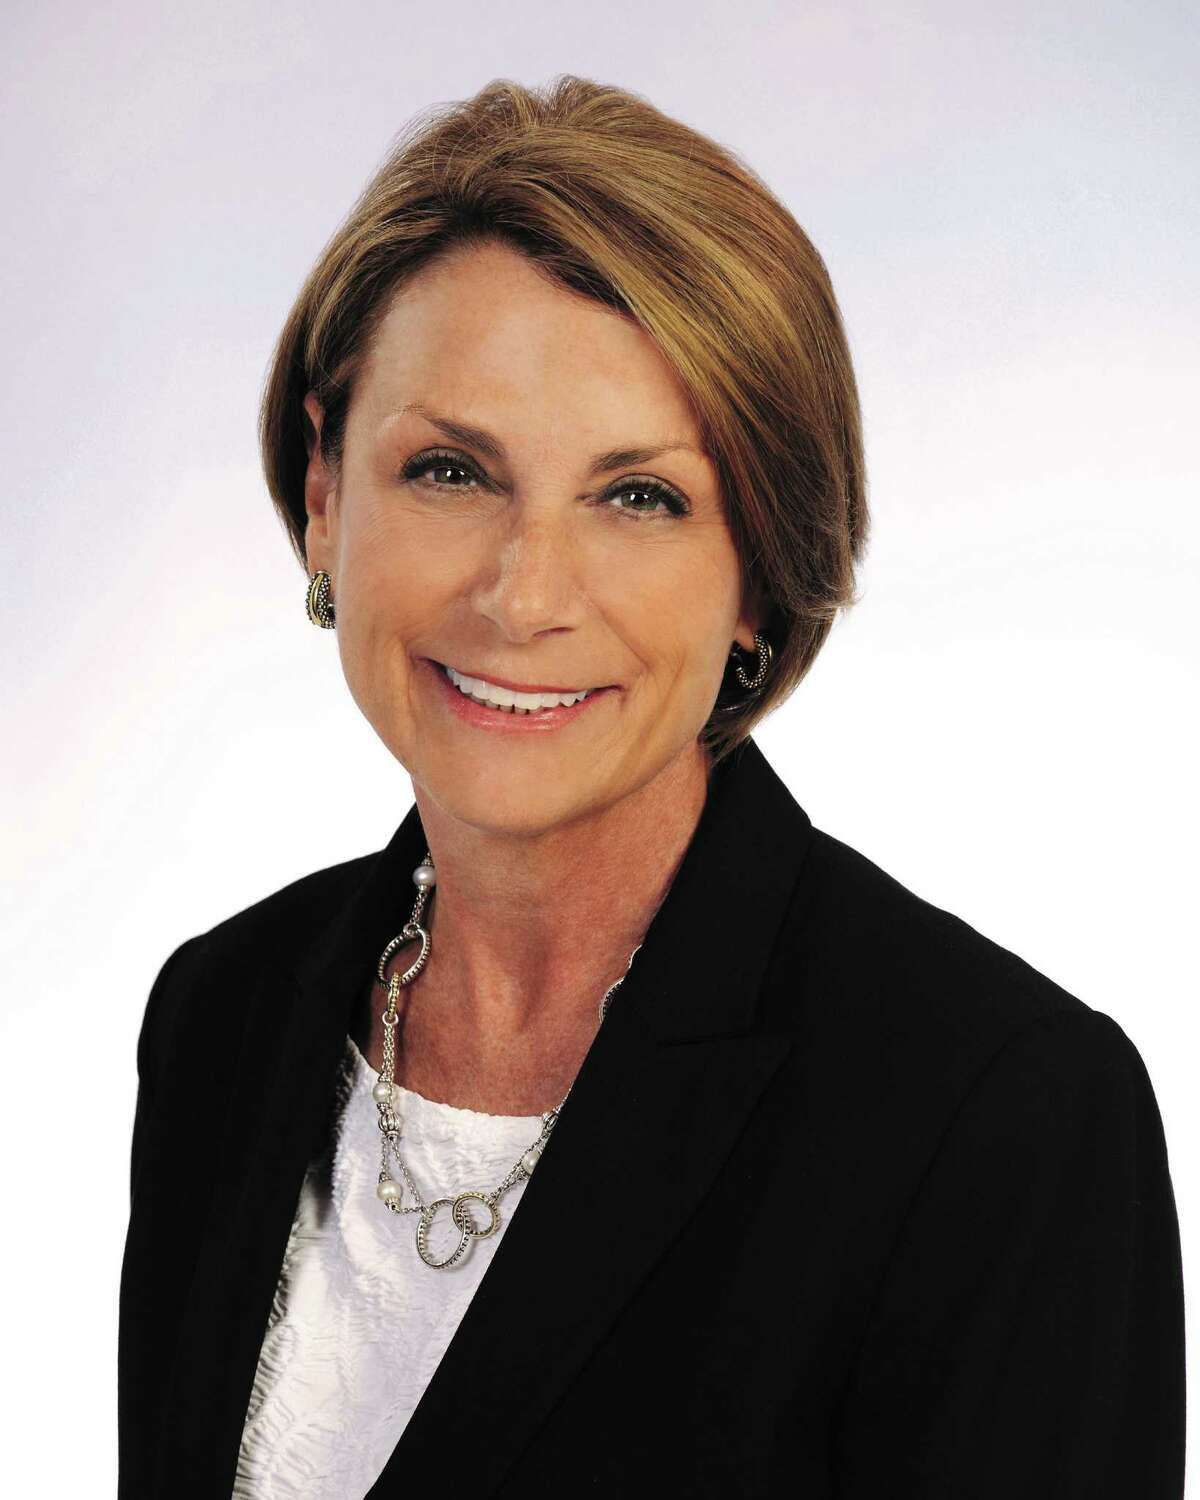 Beth Eaton has joined the Champions sales office of Better Homes and Gardens Real Estate Gary Greene.